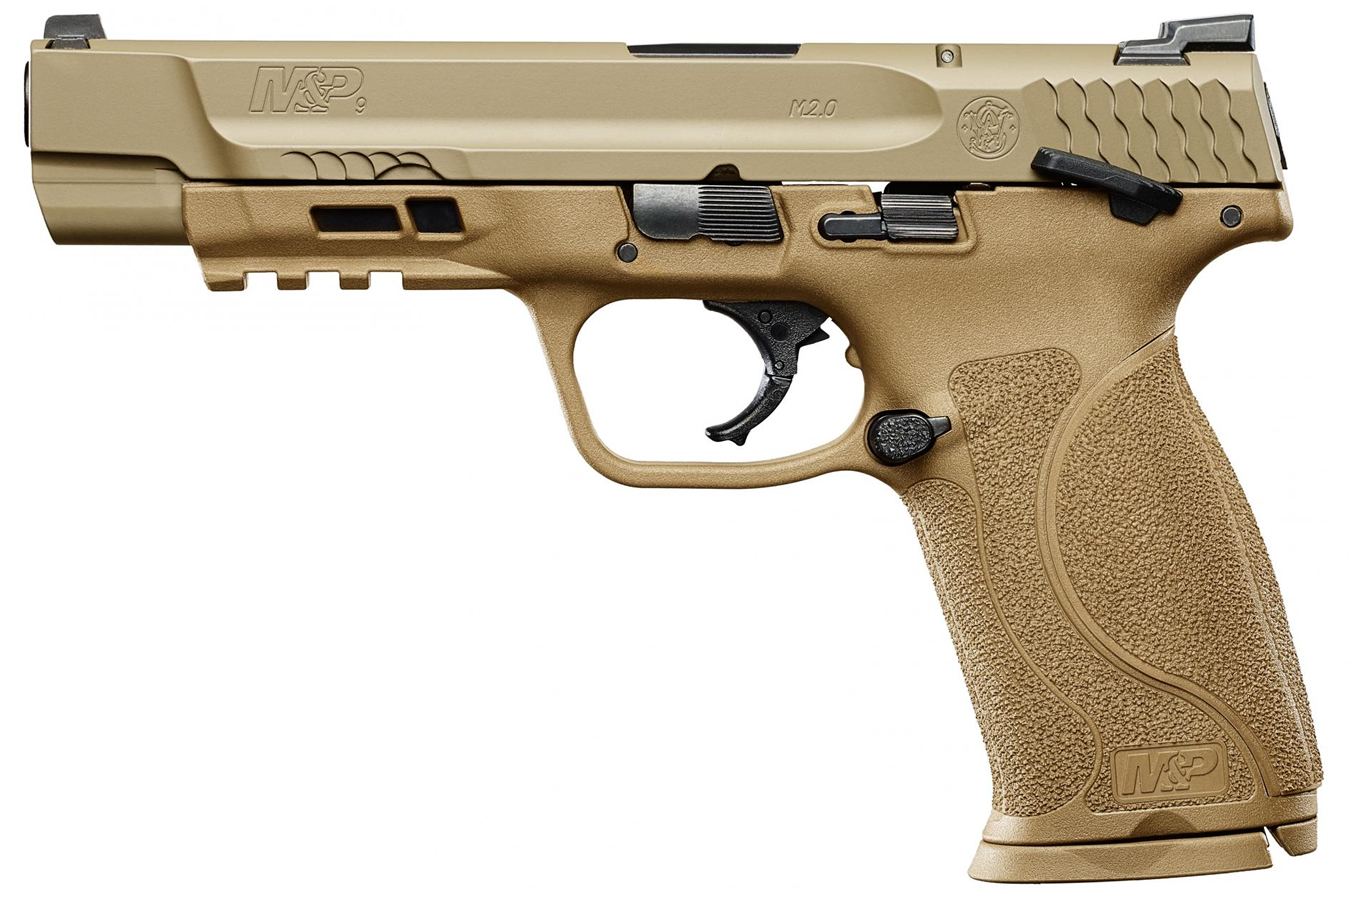 No. 11 Best Selling: SMITH AND WESSON MP9 M2.0 9MM FDE PISTOL W/ 5-INCH BARREL